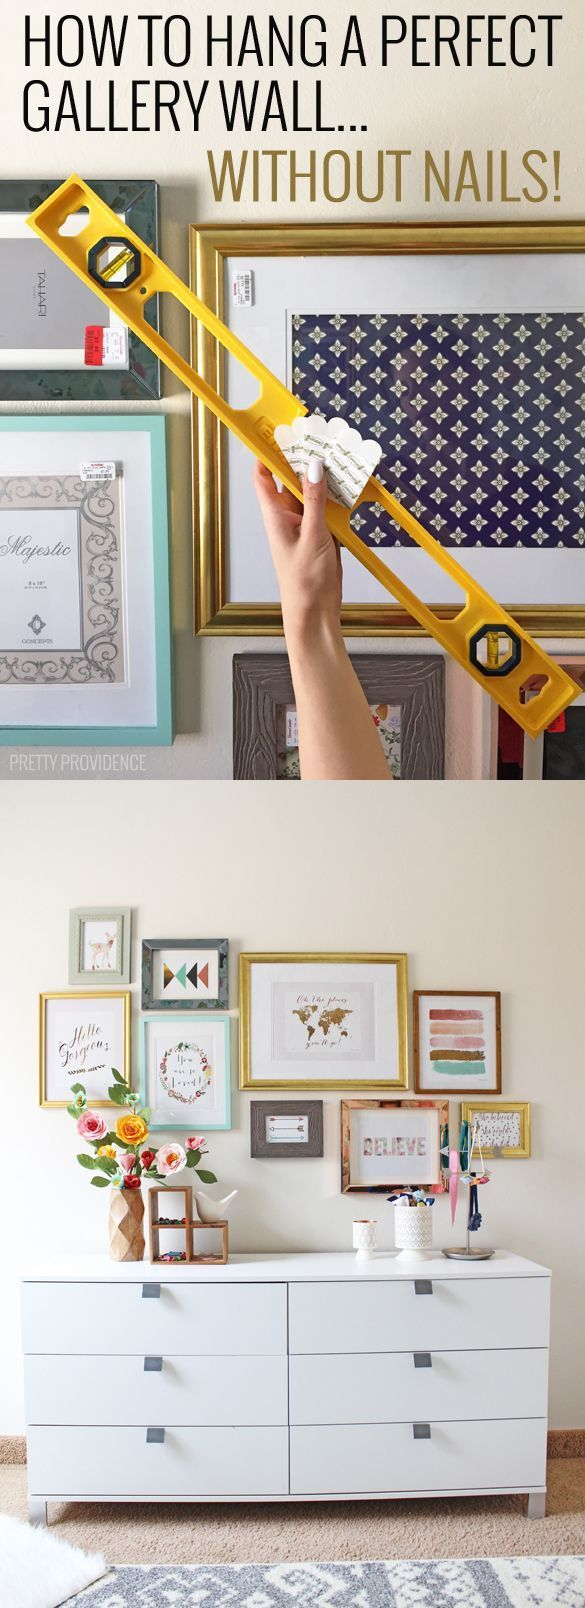 Don T Lose Your Security Deposit Renters Or Ruin Your Walls Owners Hang The Perfect Gallery Wall Without Home Decor Tips Perfect Gallery Wall Gallery Wall